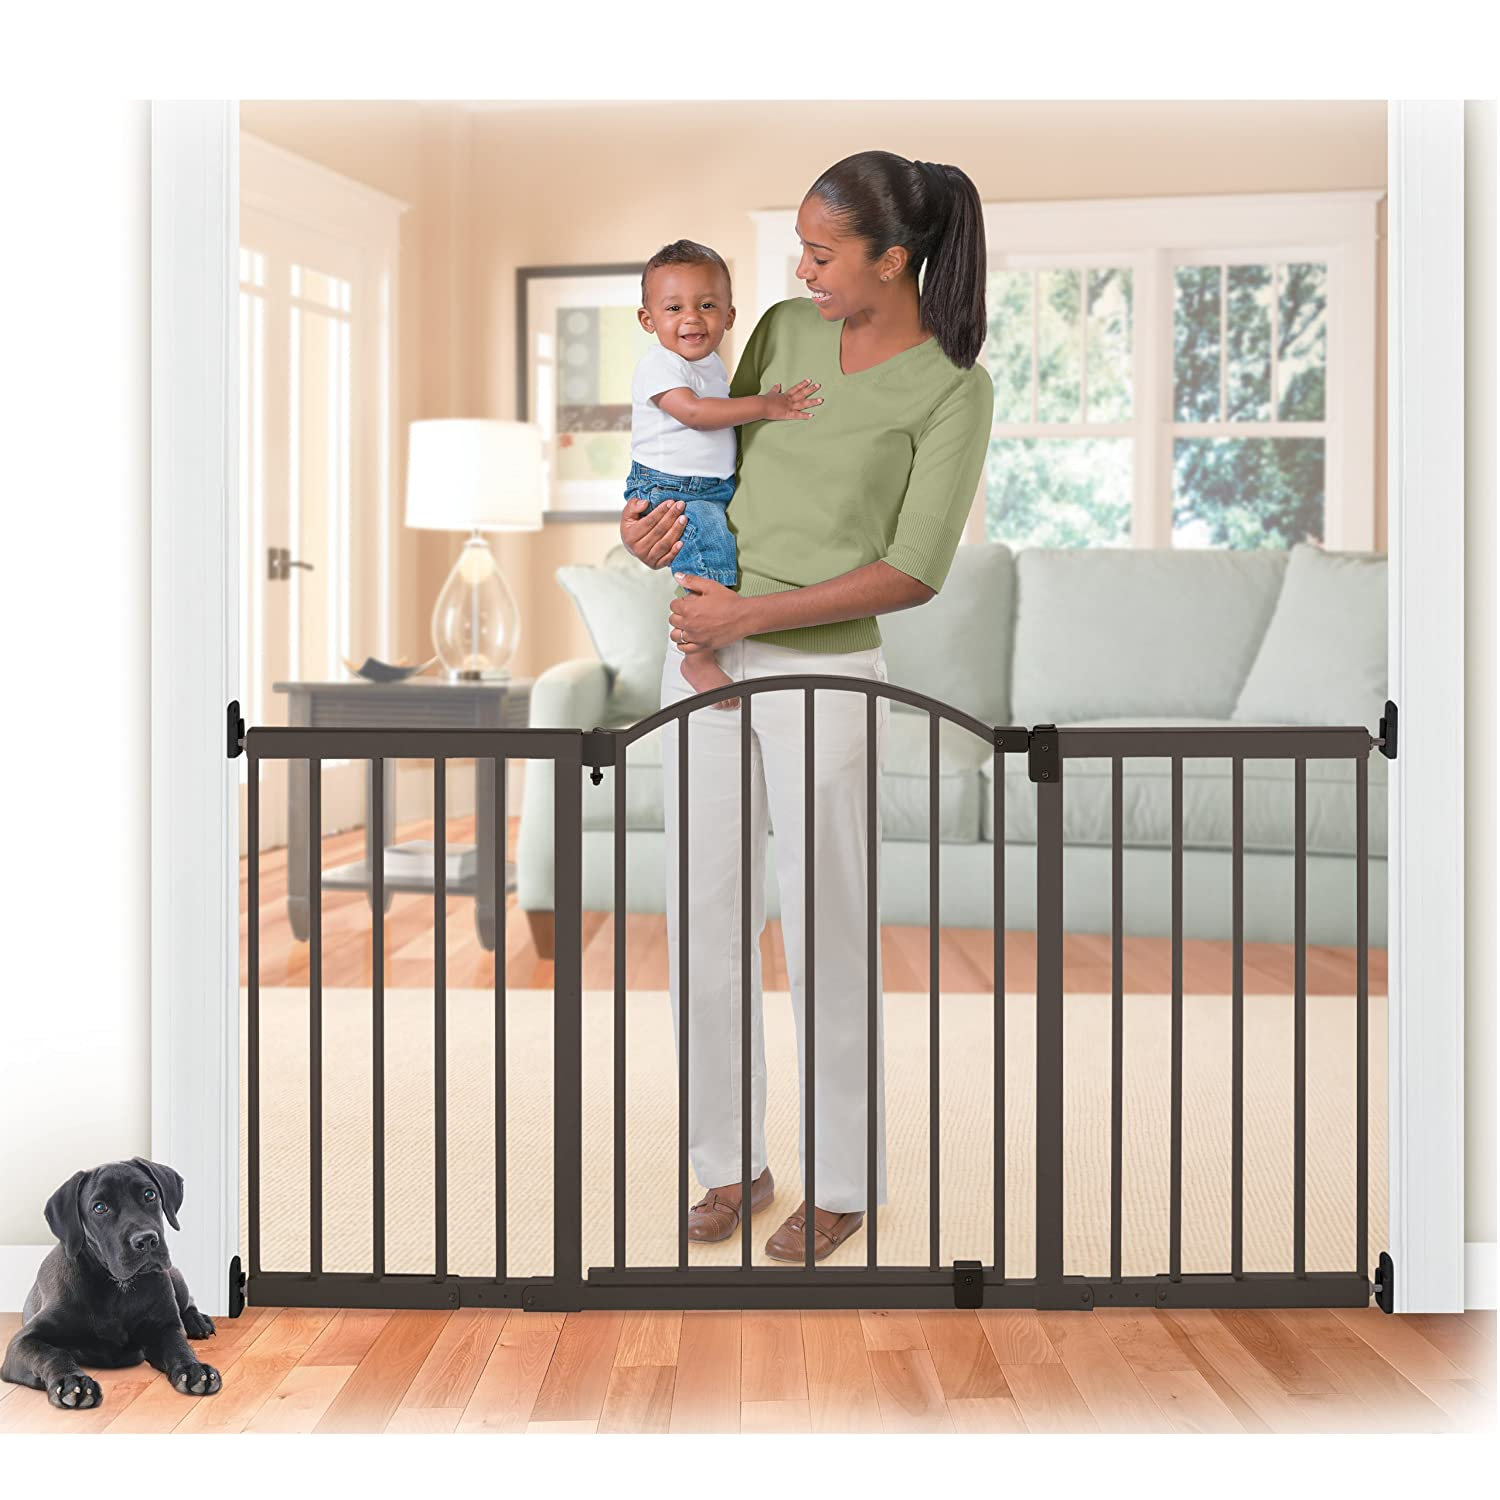 Amazon.com : Summer Infant Metal Expansion Gate, 6 Foot Wide Extra ...